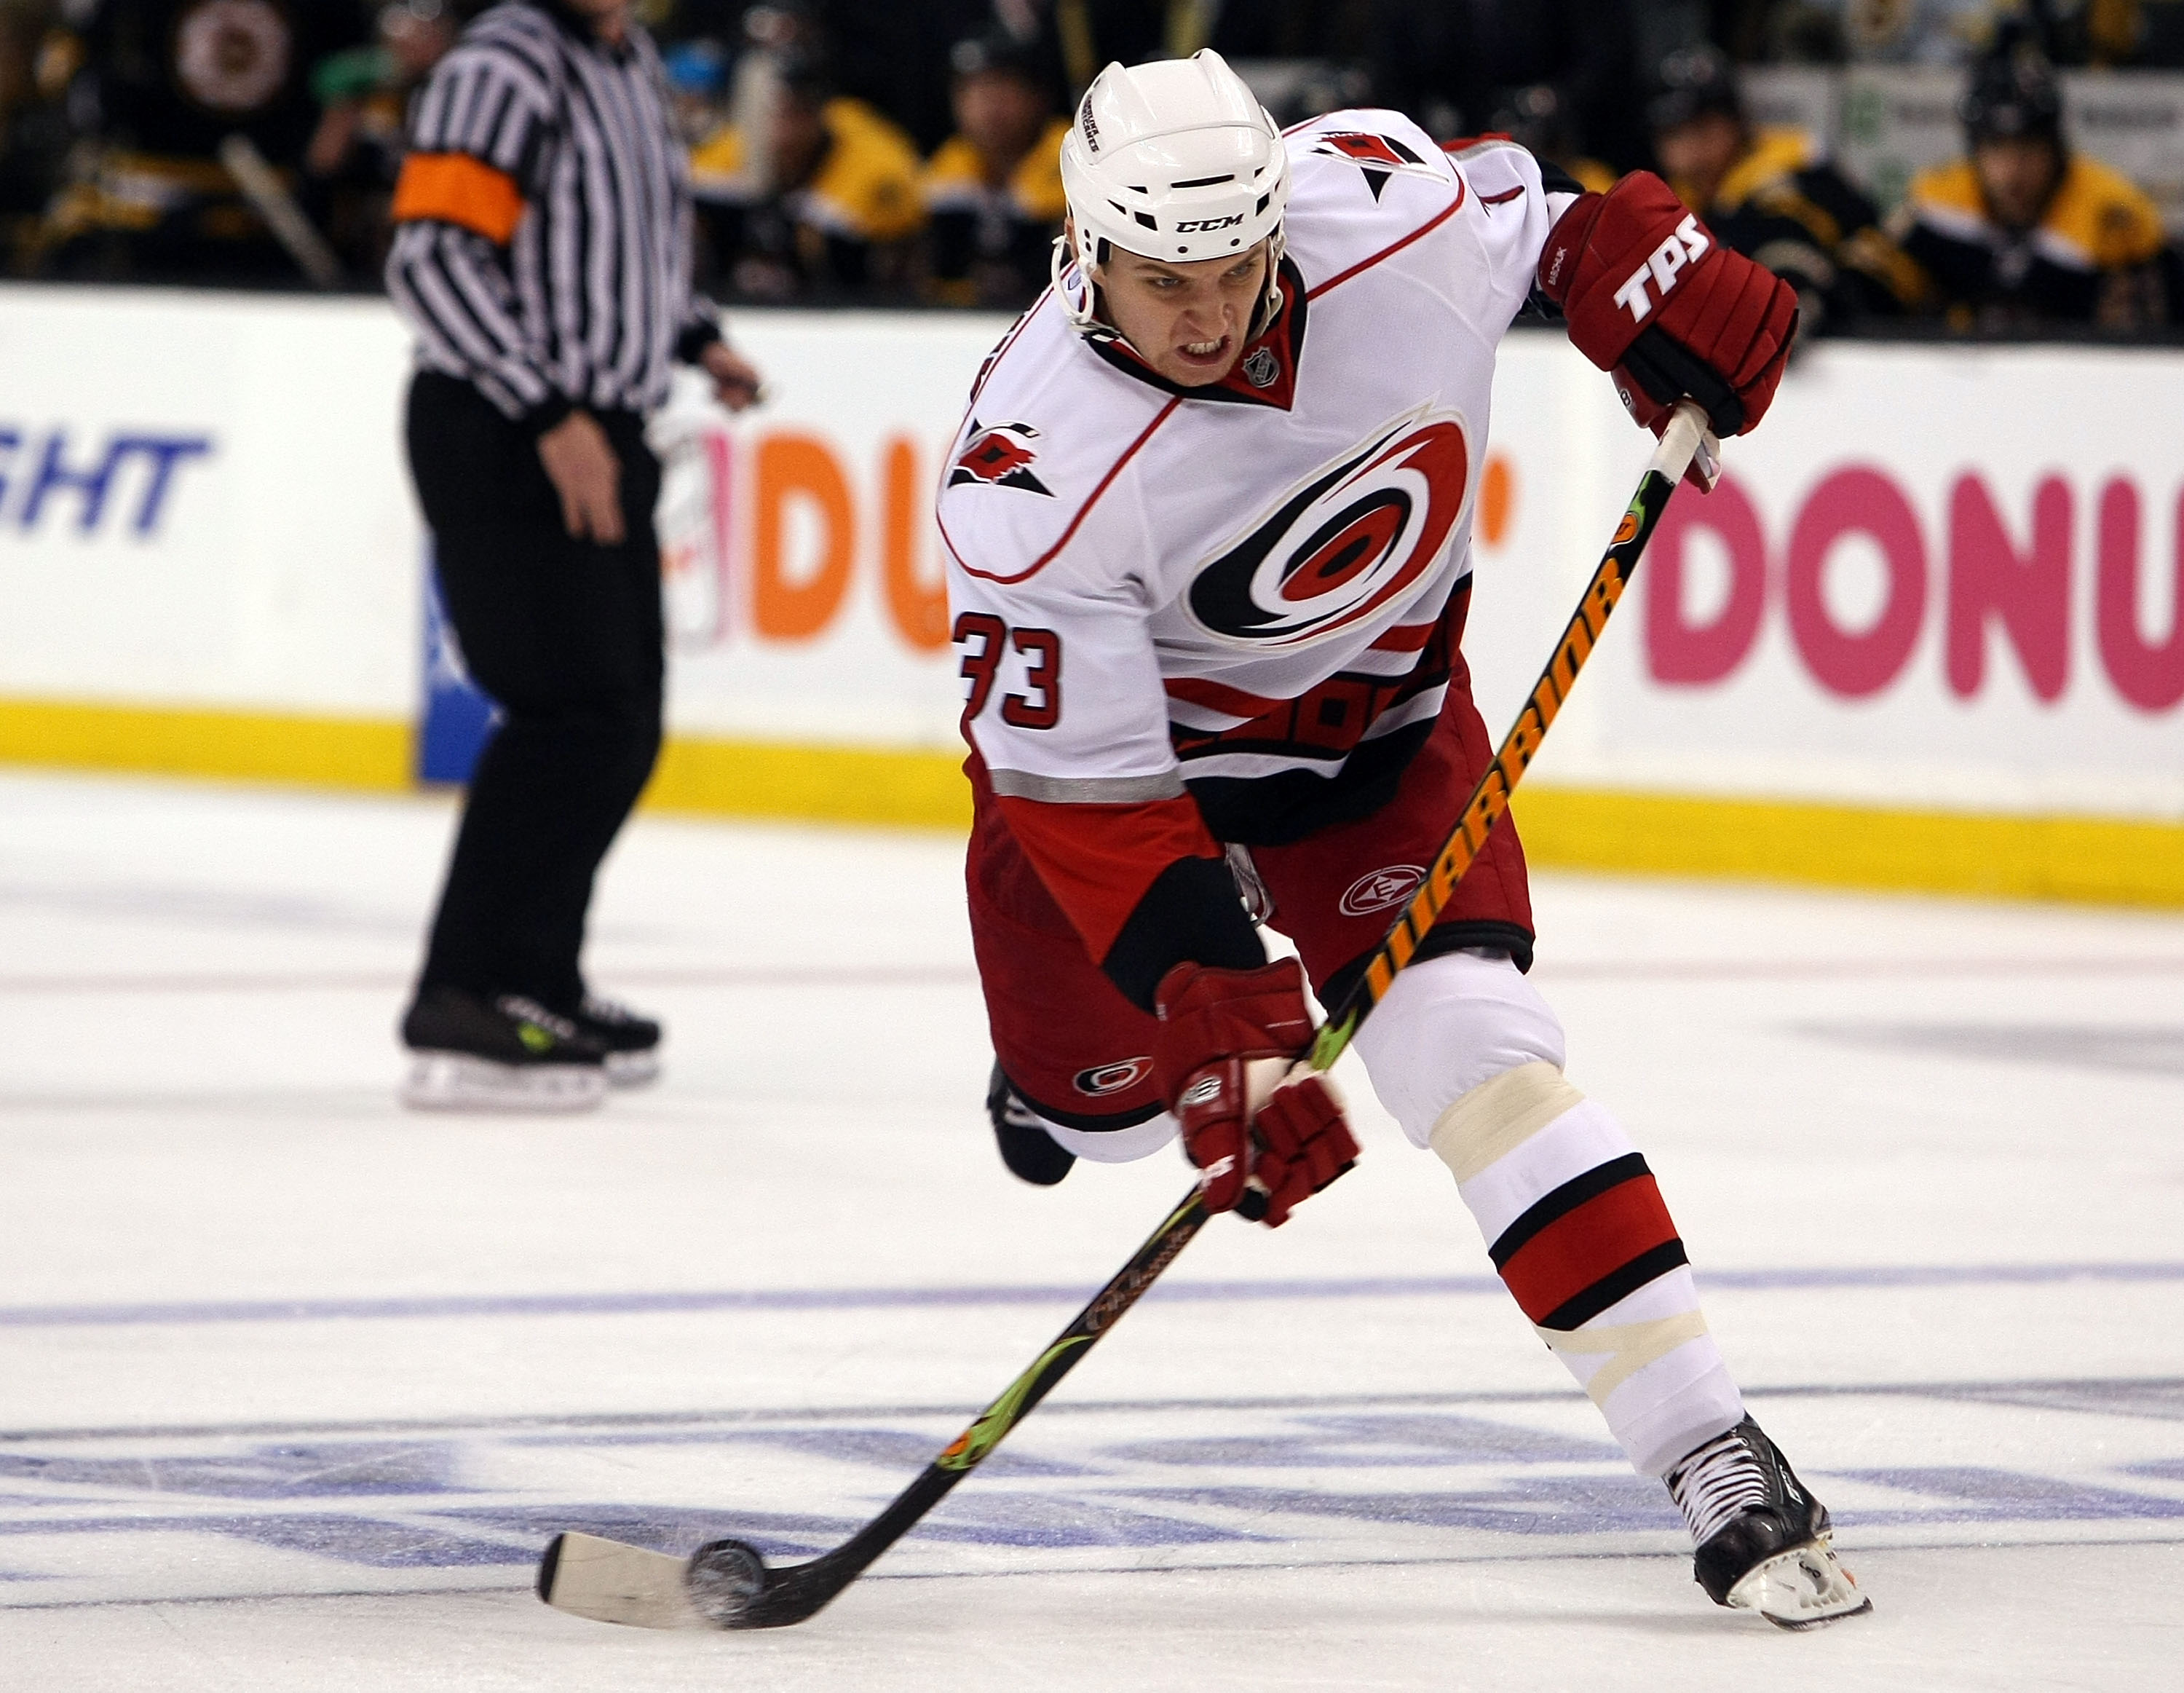 BOSTON - MAY 03:  Anton Babchuk #33 of the Carolina Hurricanes takes a shot in the second period against the Boston Bruins during Game Two of the Eastern Conference Semifinal Round of the 2009 Stanley Cup Playoffs on May 3, 2009 at the TD Banknorth Garden